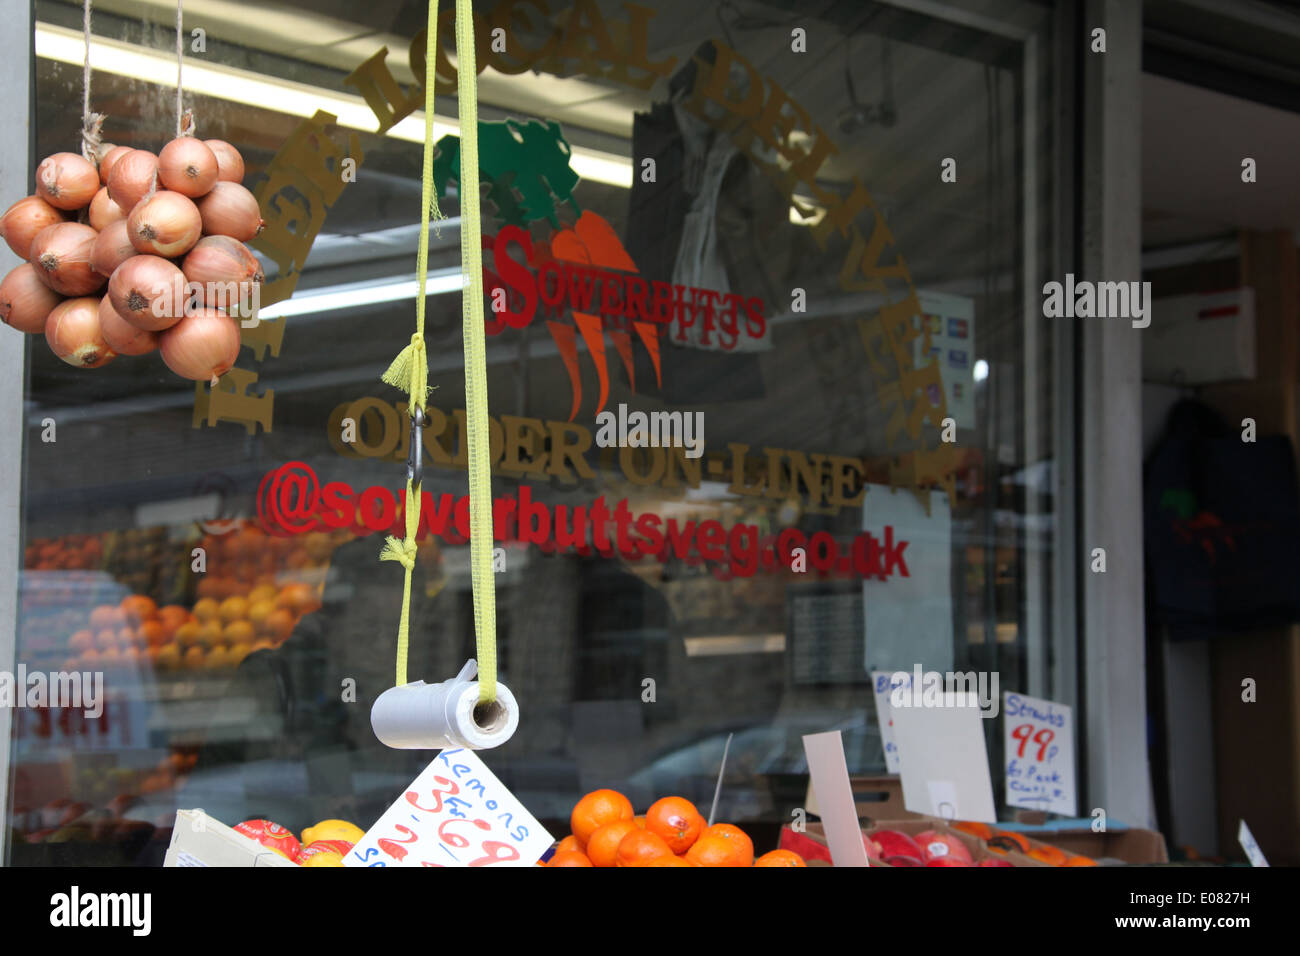 Sowerbutts of Glossop which is a traditional greengrocery - Stock Image